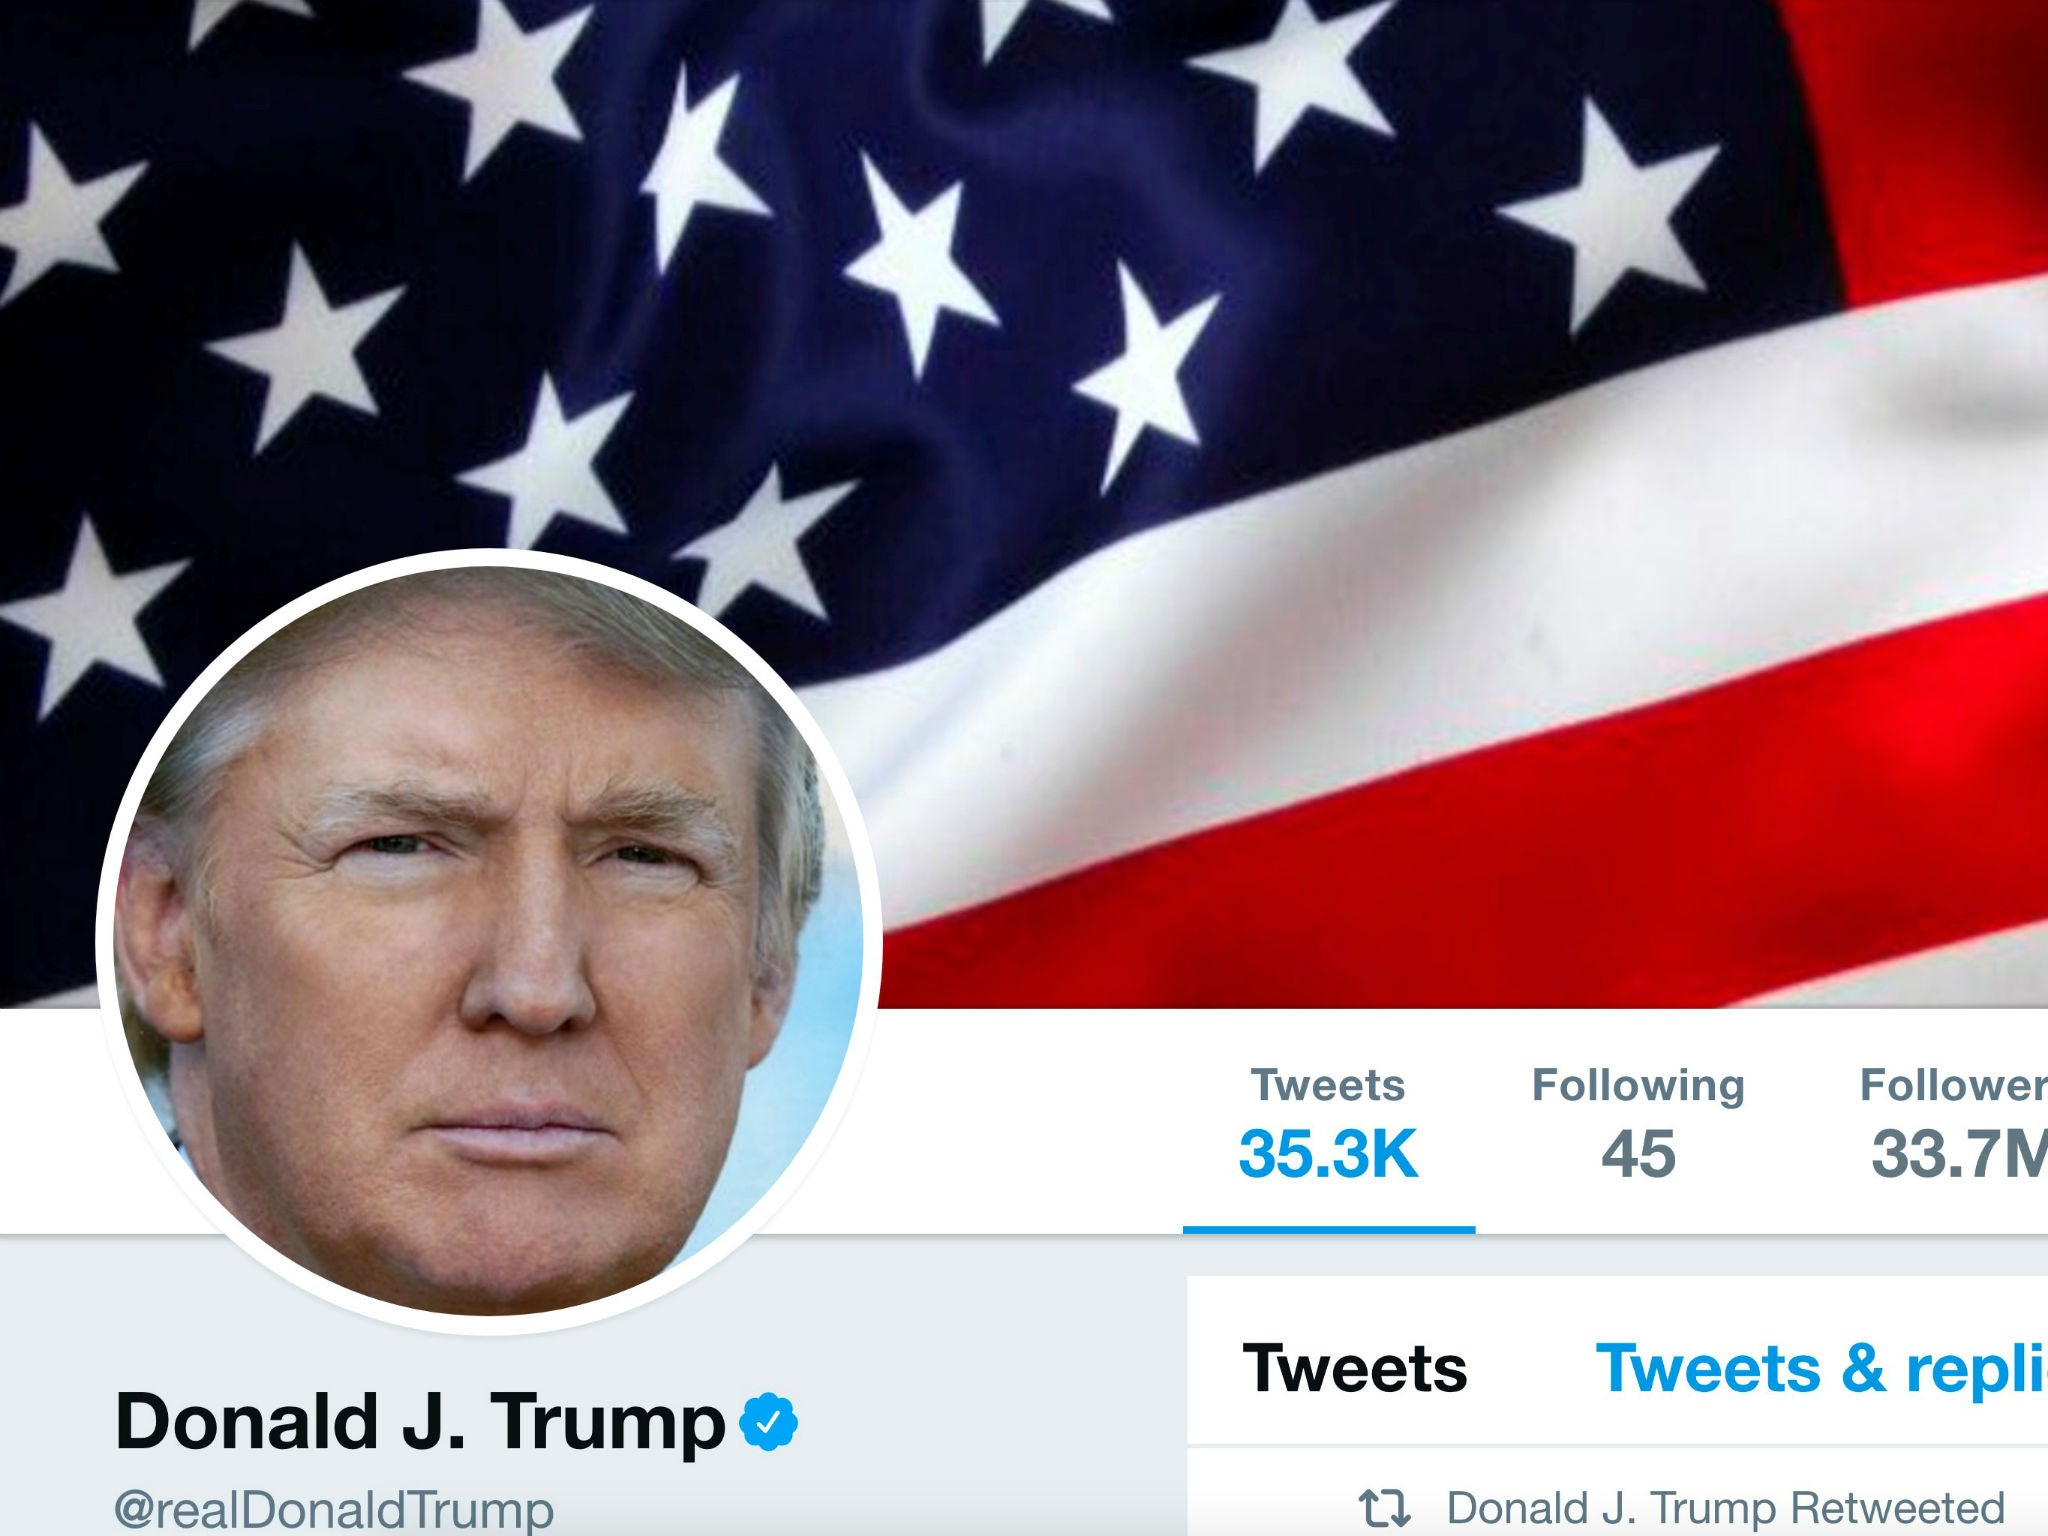 Donald Trump can't block people on Twitter because of First Amendment, judge rules